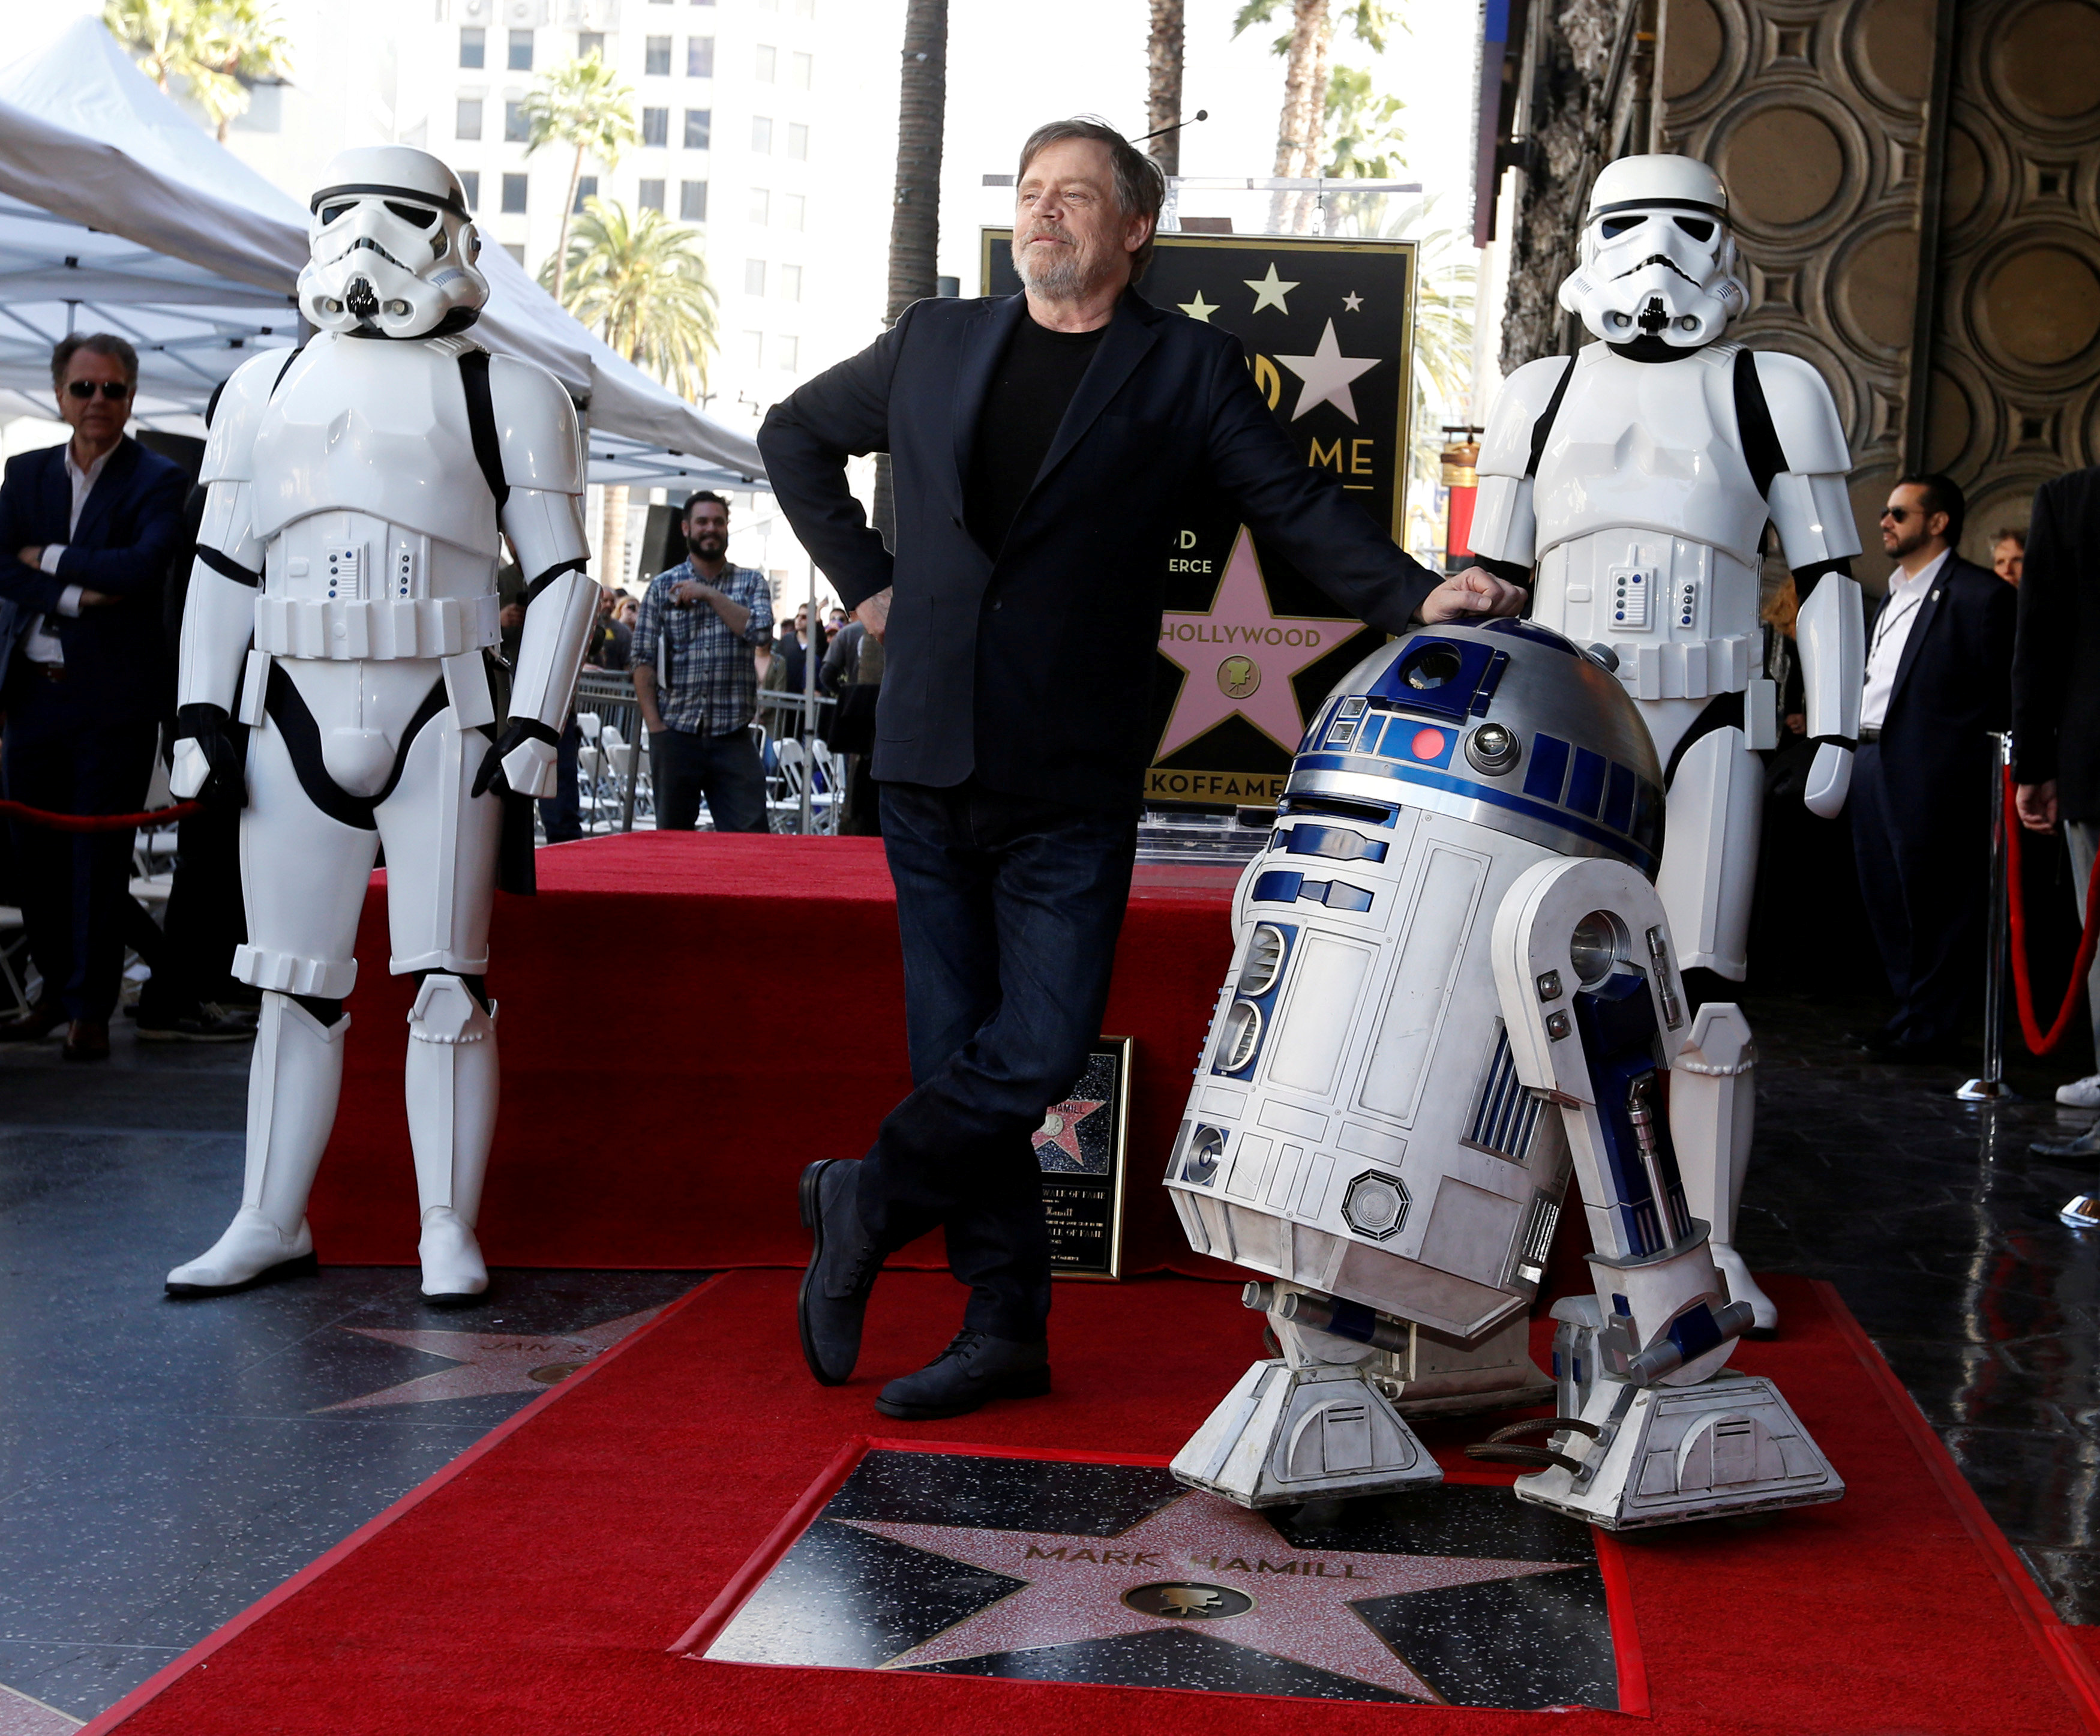 """Actor Mark Hamill poses with """"Star Wars"""" characters R2-D2 and Stormtroopers after unveiling his star on the Hollywood Walk of Fame in Los Angeles"""